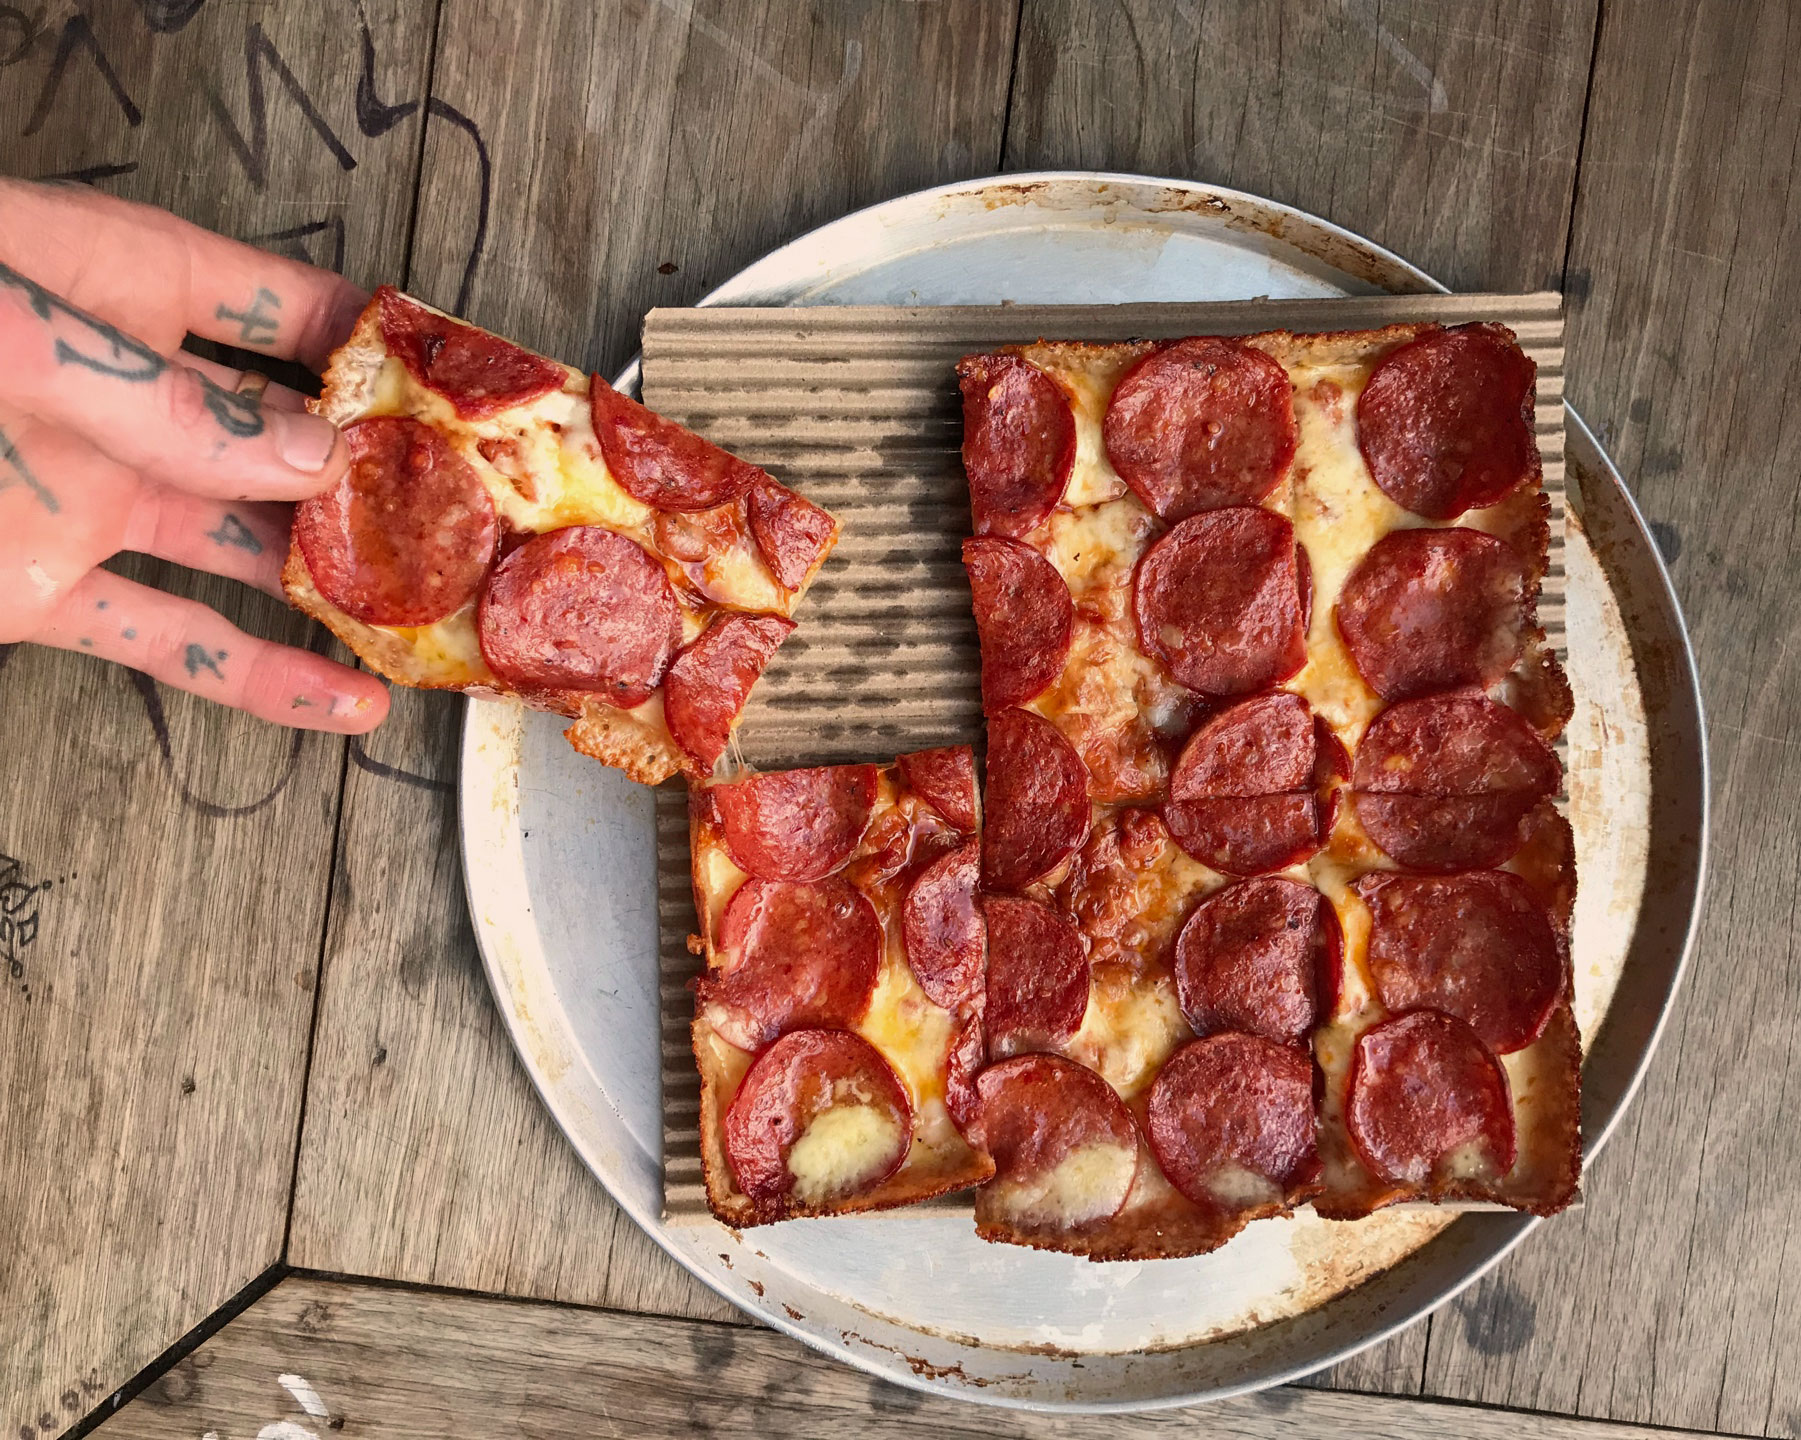 Mary's Detroit style pizza. A square pizza with pepperoni. A hand is pulling a slice away from the plate.